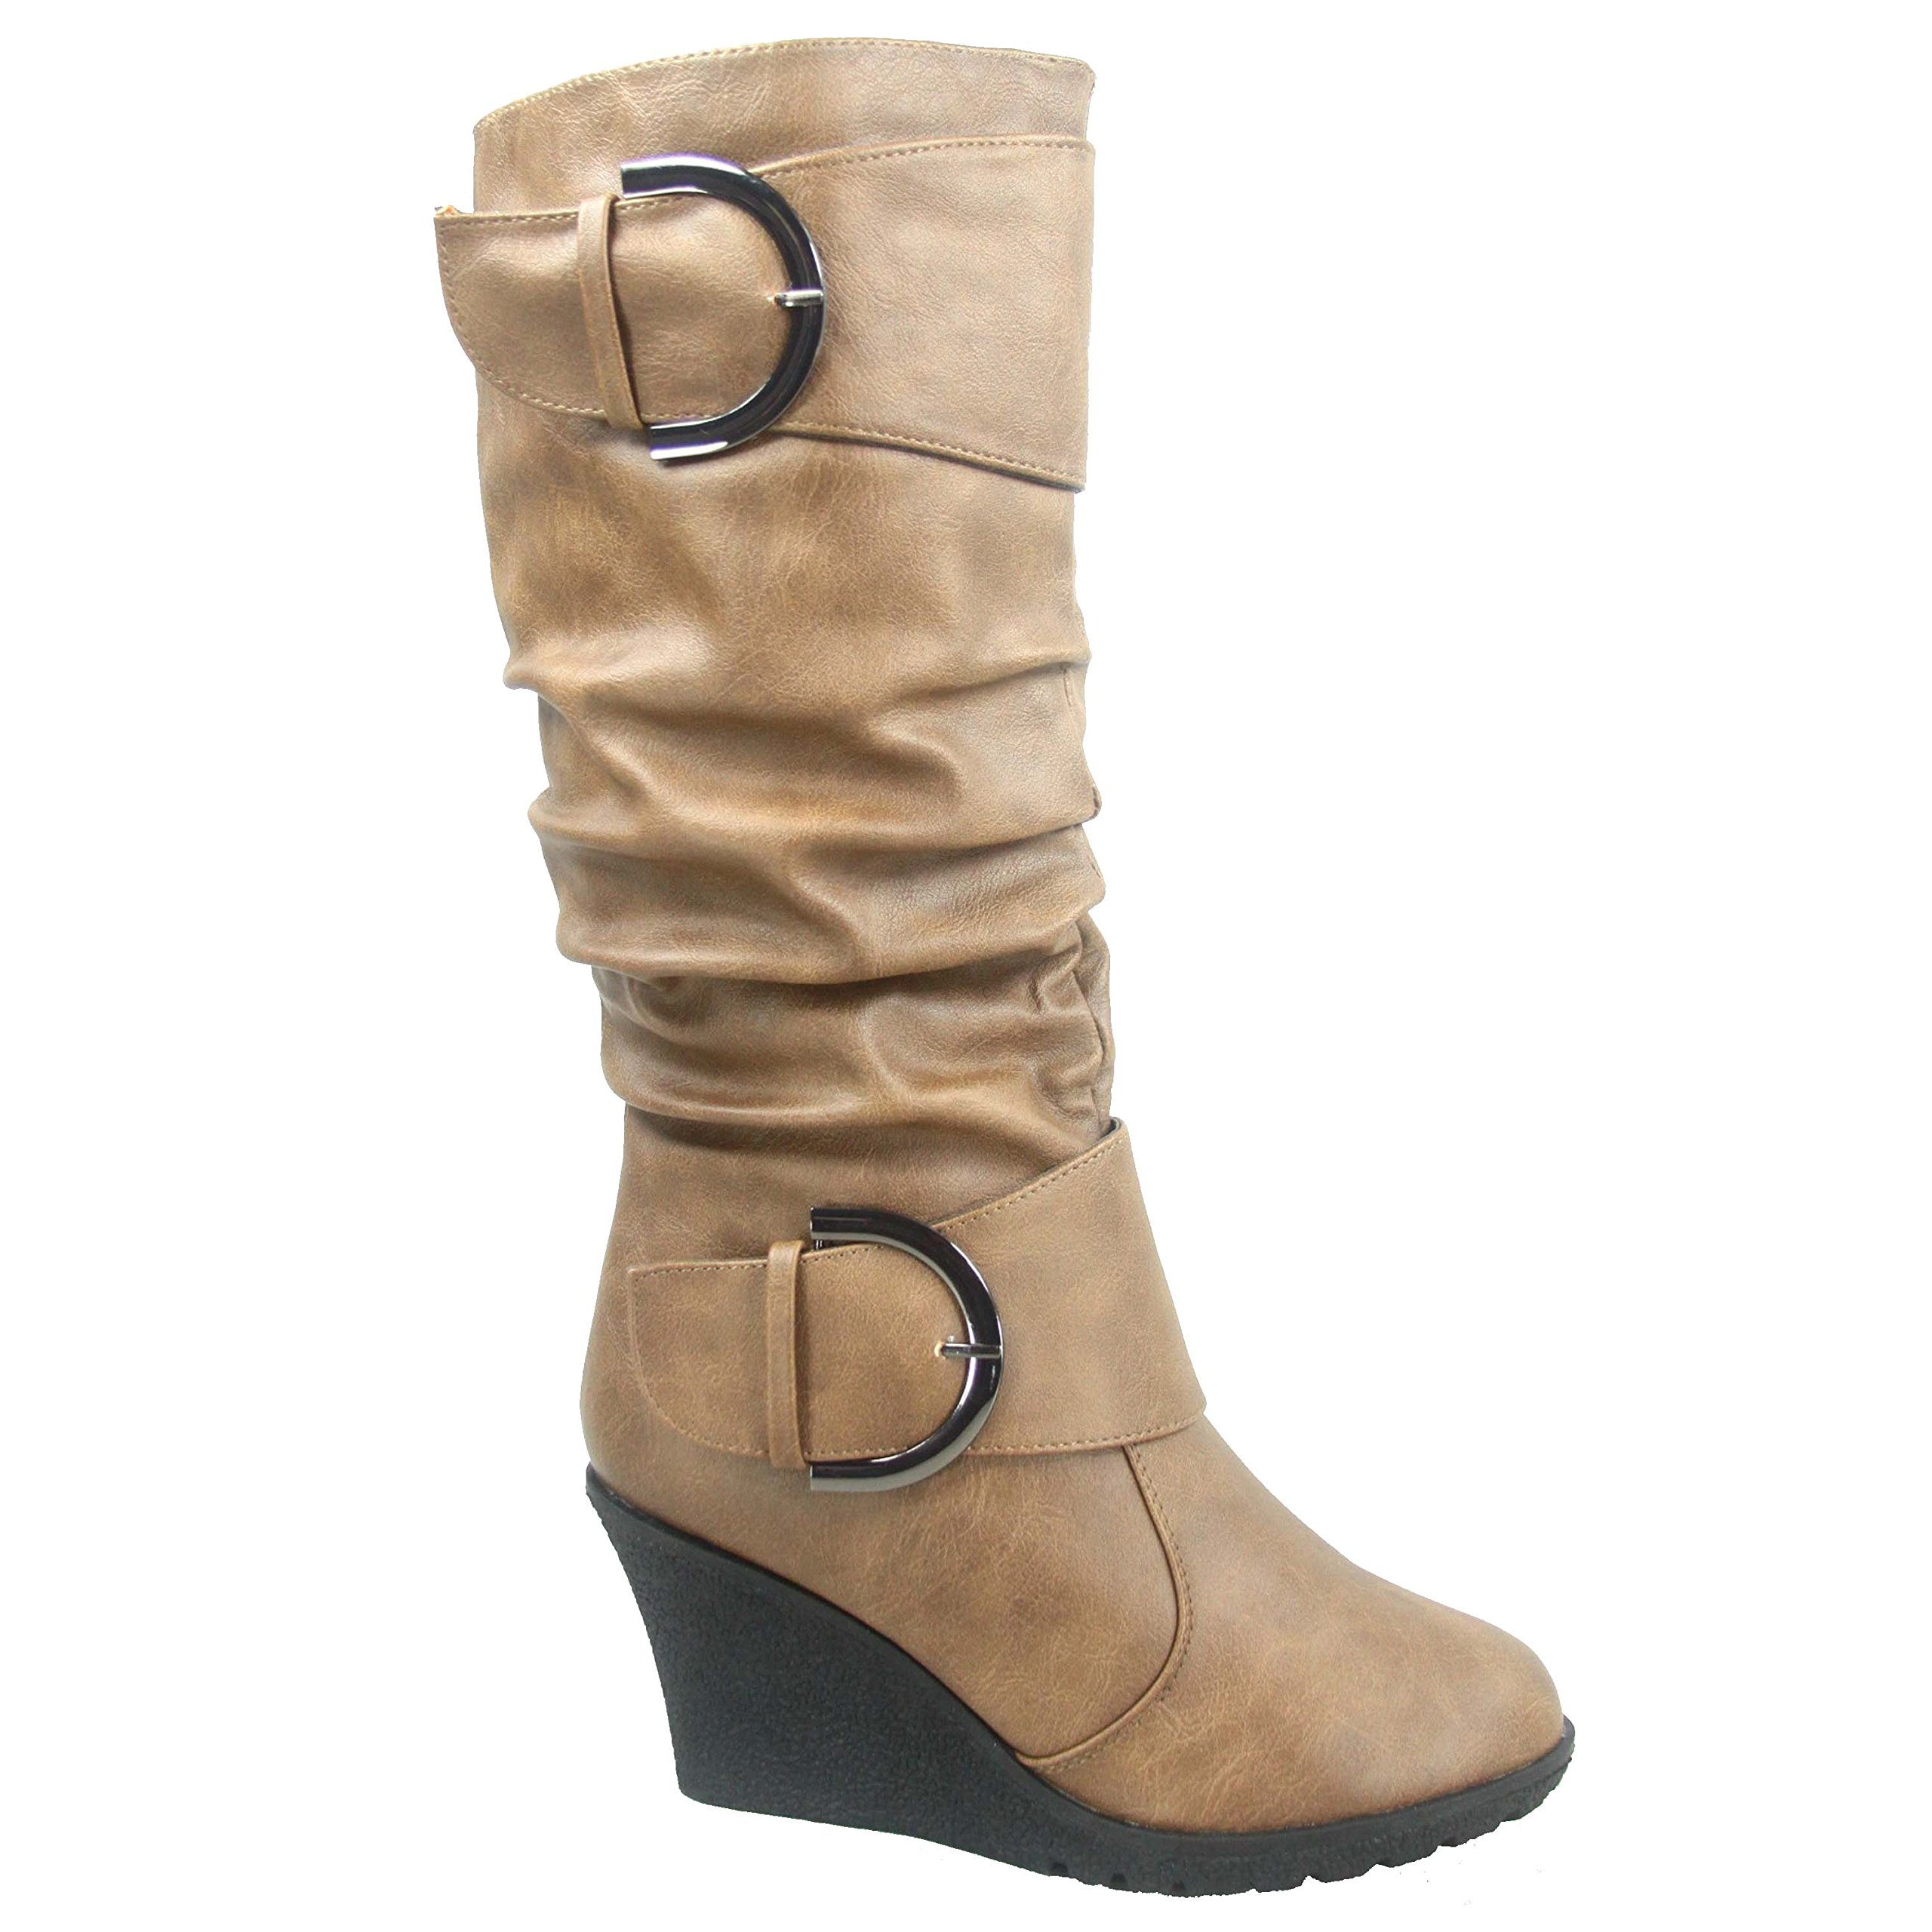 Top Moda Pure-65 Women's Fashion Round Toe Slouch Buckle Wedge Mid Calf Boot Shoes (8.5, Conac)